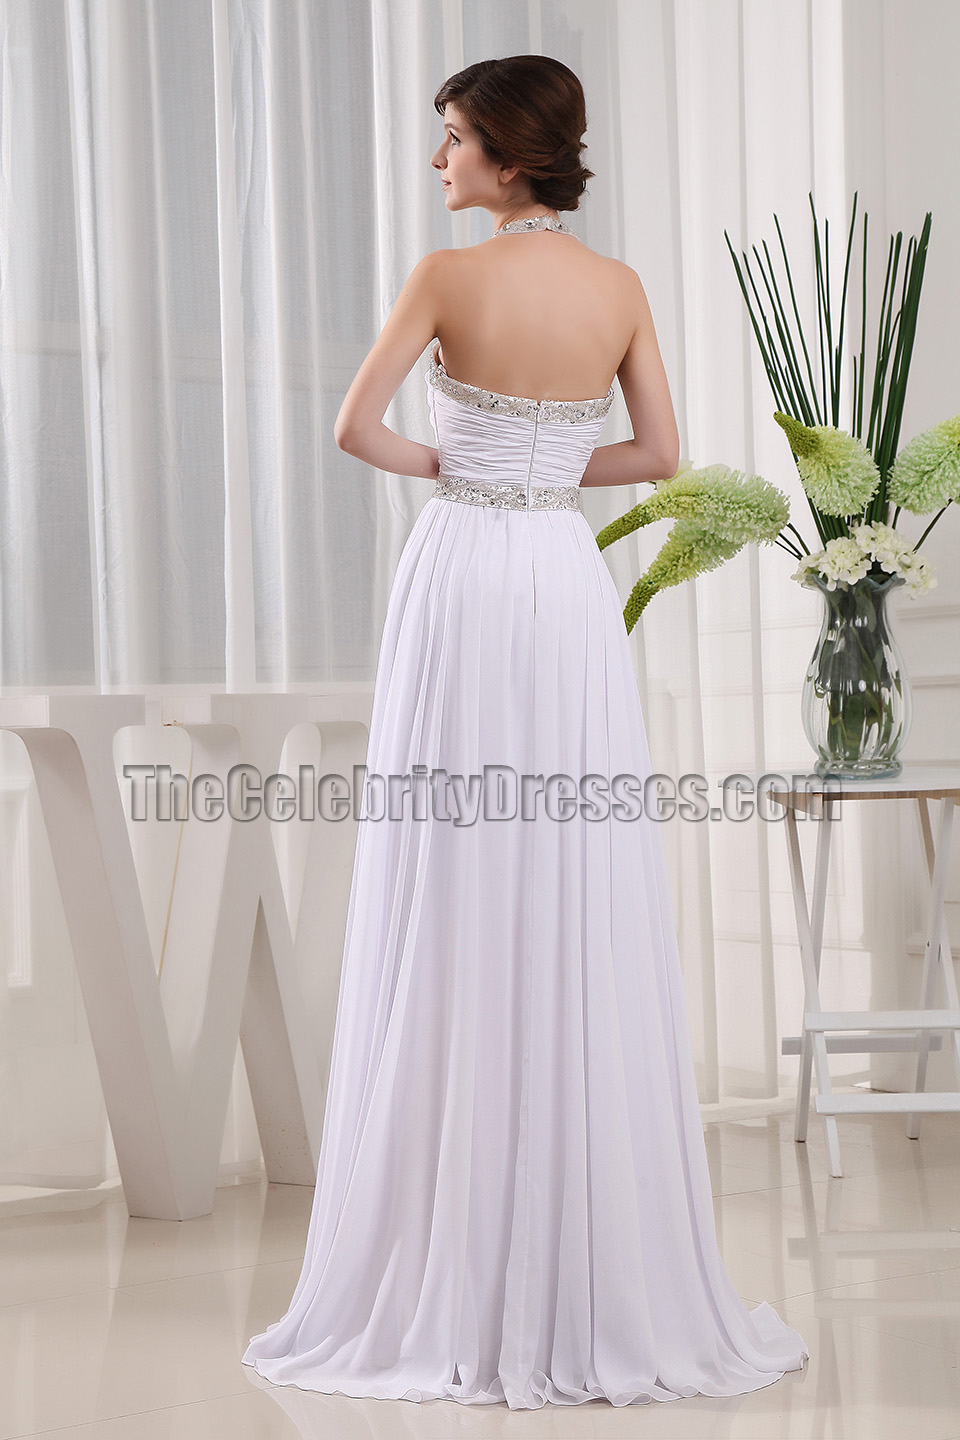 White Beaded Halter Prom Dress Evening Formal Gowns ...